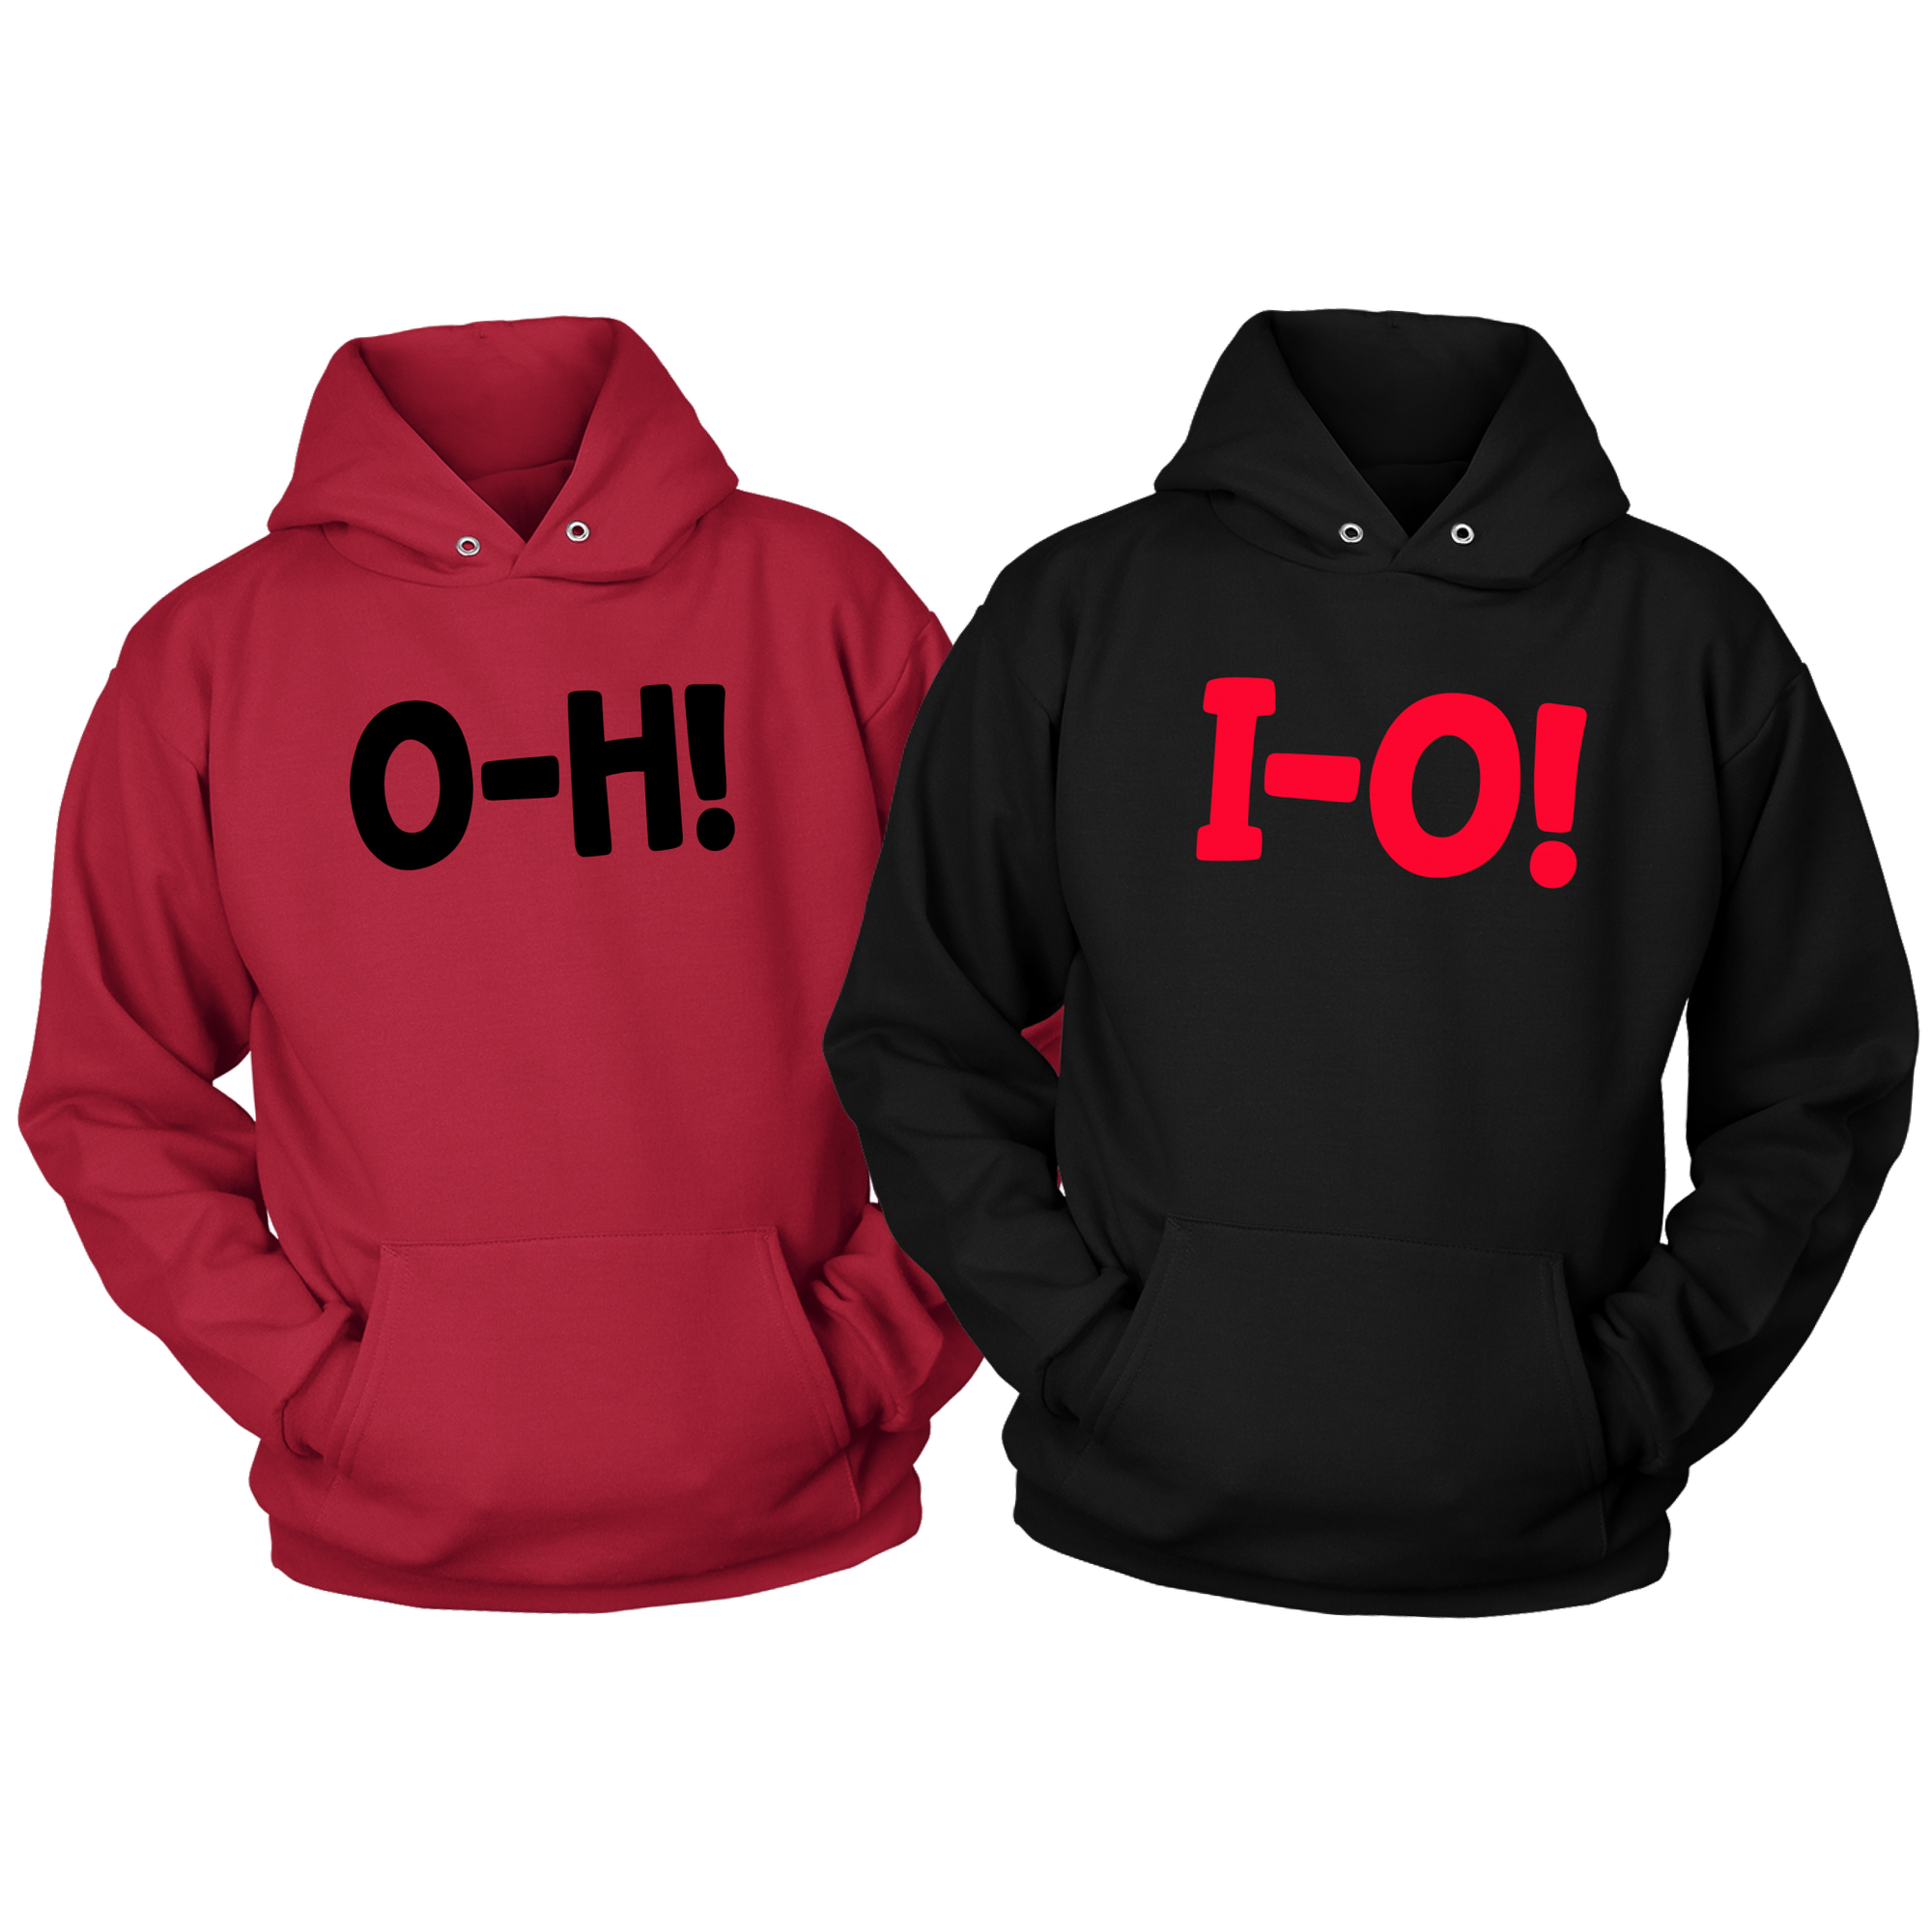 O-H! I-O! Red/Black COMBO COUPLES Hoodies